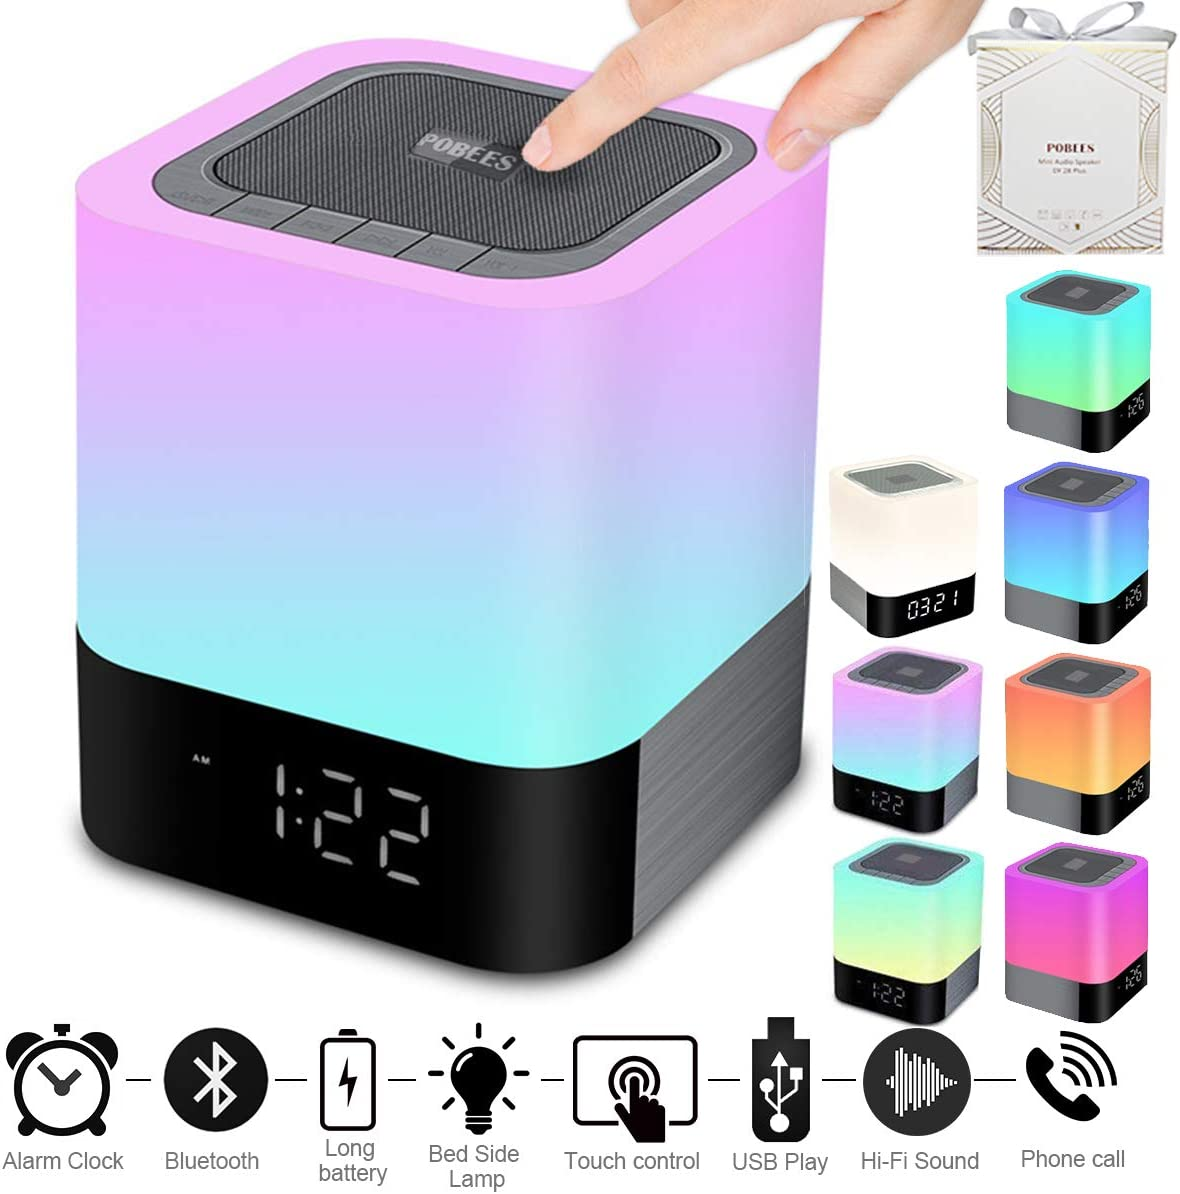 Portable Wireless Bluetooth 4 0 Speaker  Newest Version  - Big Sound Heavy Base  48 Led Changing Color Dimmable Warm Light Night Lamp Alarm Clock Hand-Free Call MP3